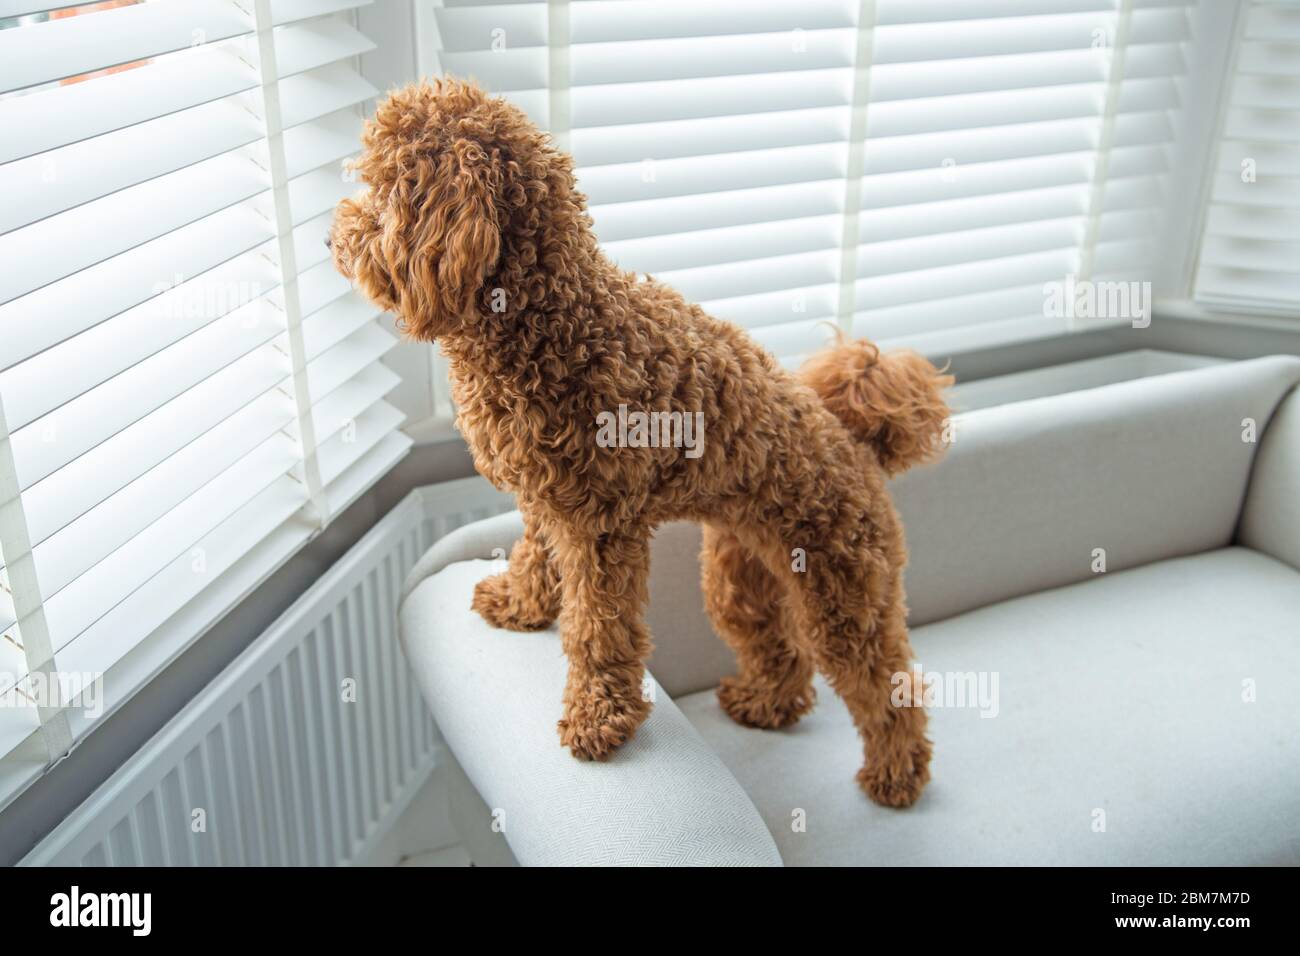 A Cut And Adorable Miniature Poodle Puppy Looks Out Of A Bedroom Window In A Smart Domestic Home Interior Setting Stock Photo Alamy